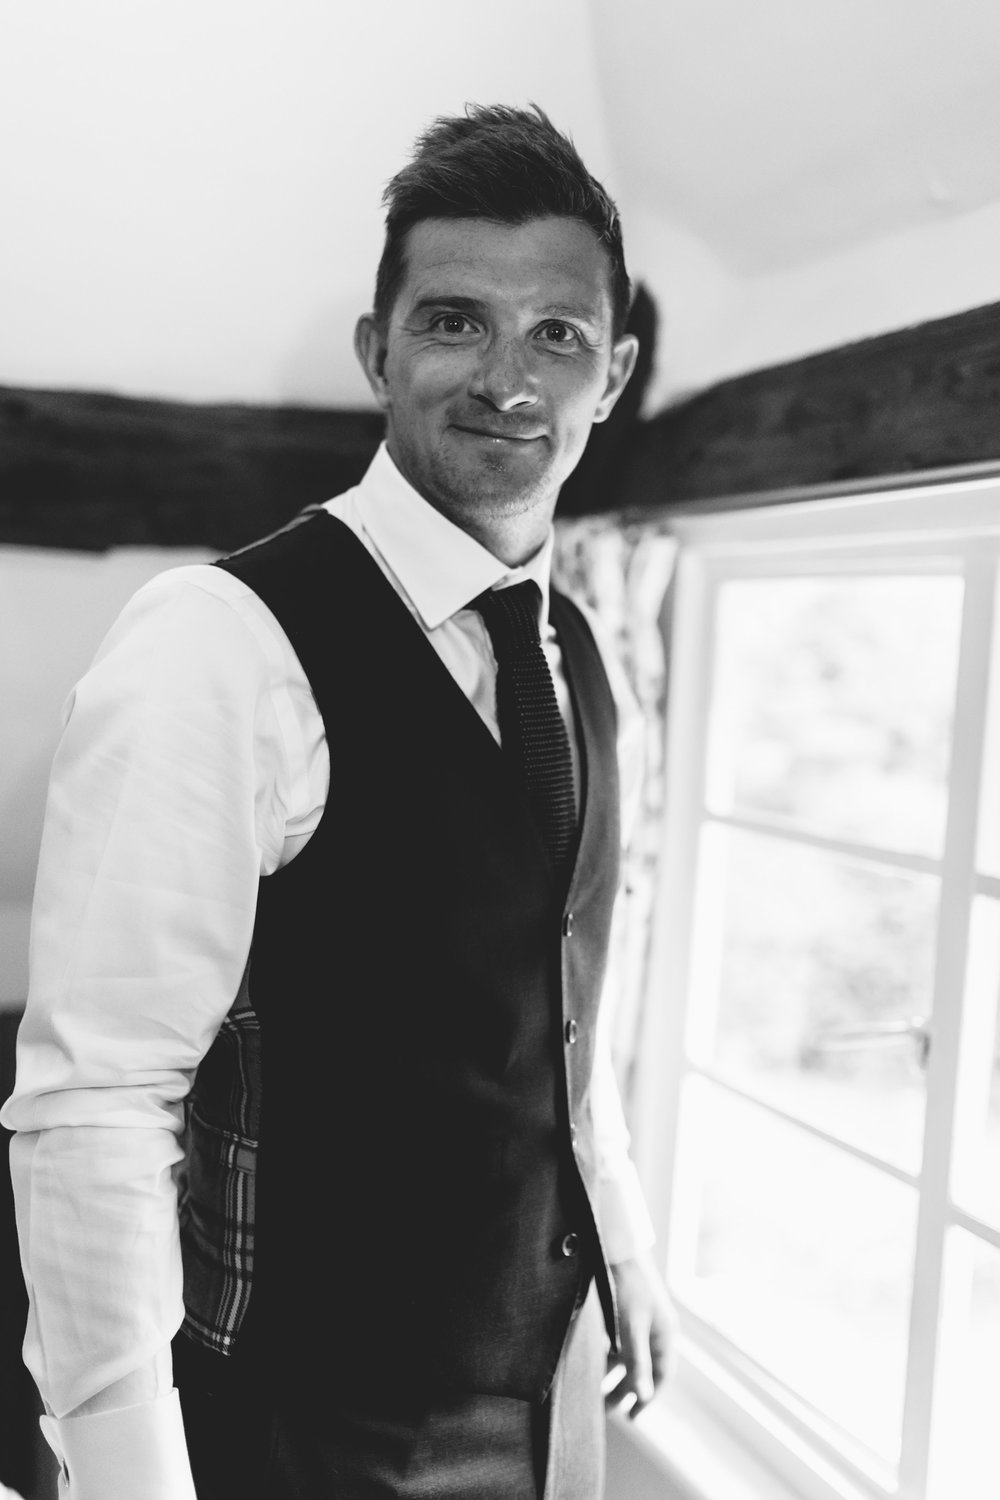 the groom Birmingham photographer wedding country artistic wedding photography91.jpg